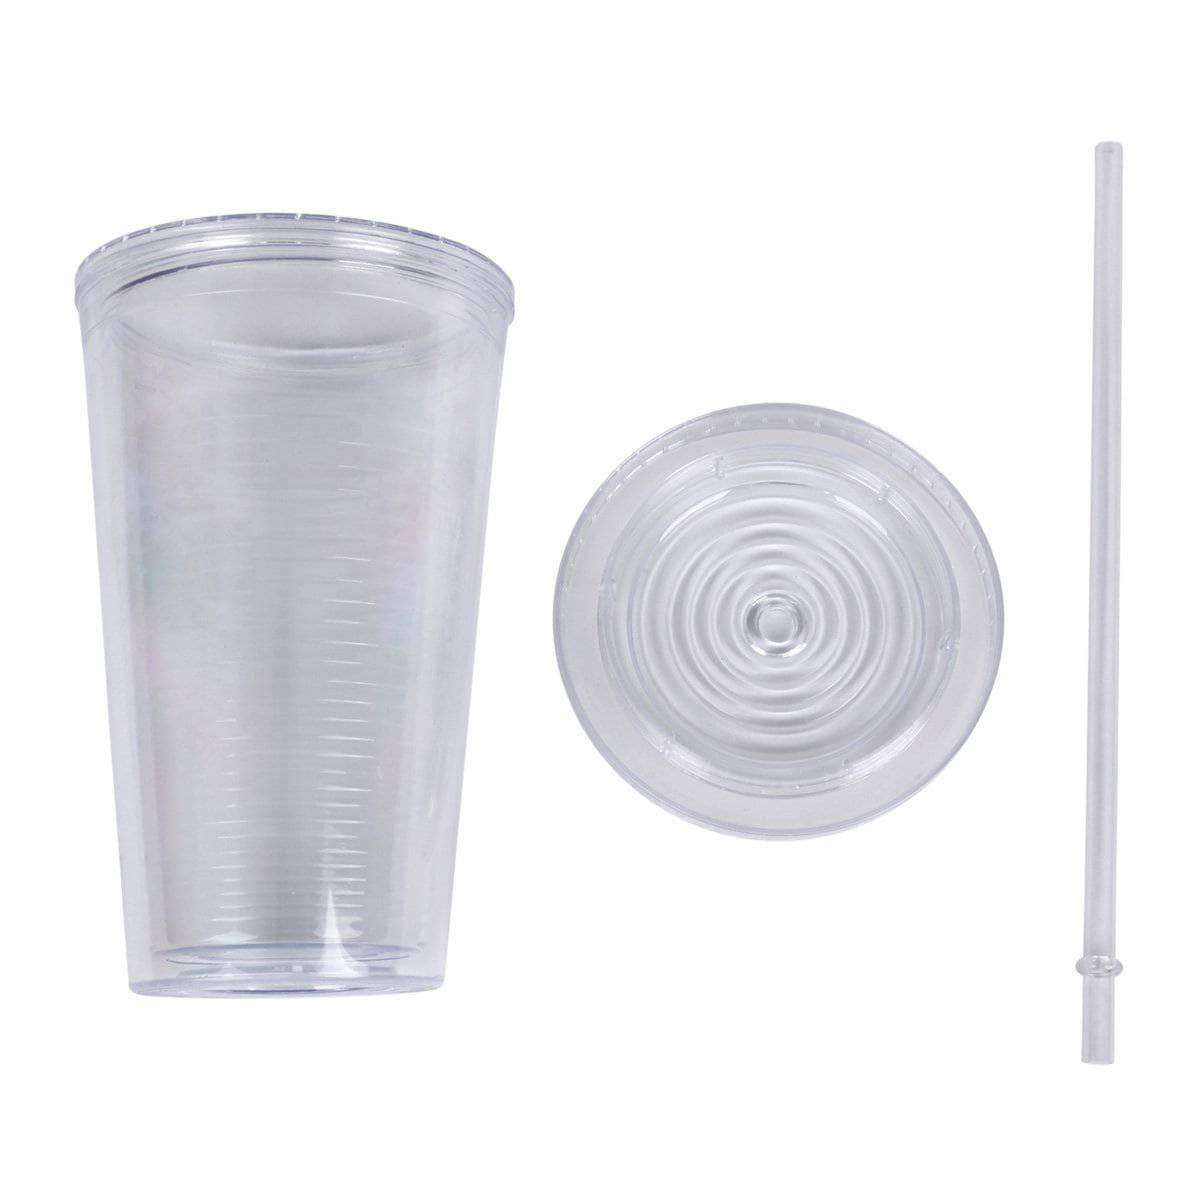 Geo Bottles Tumblers 16oz Double Wall Cup with Straw - BPA Free